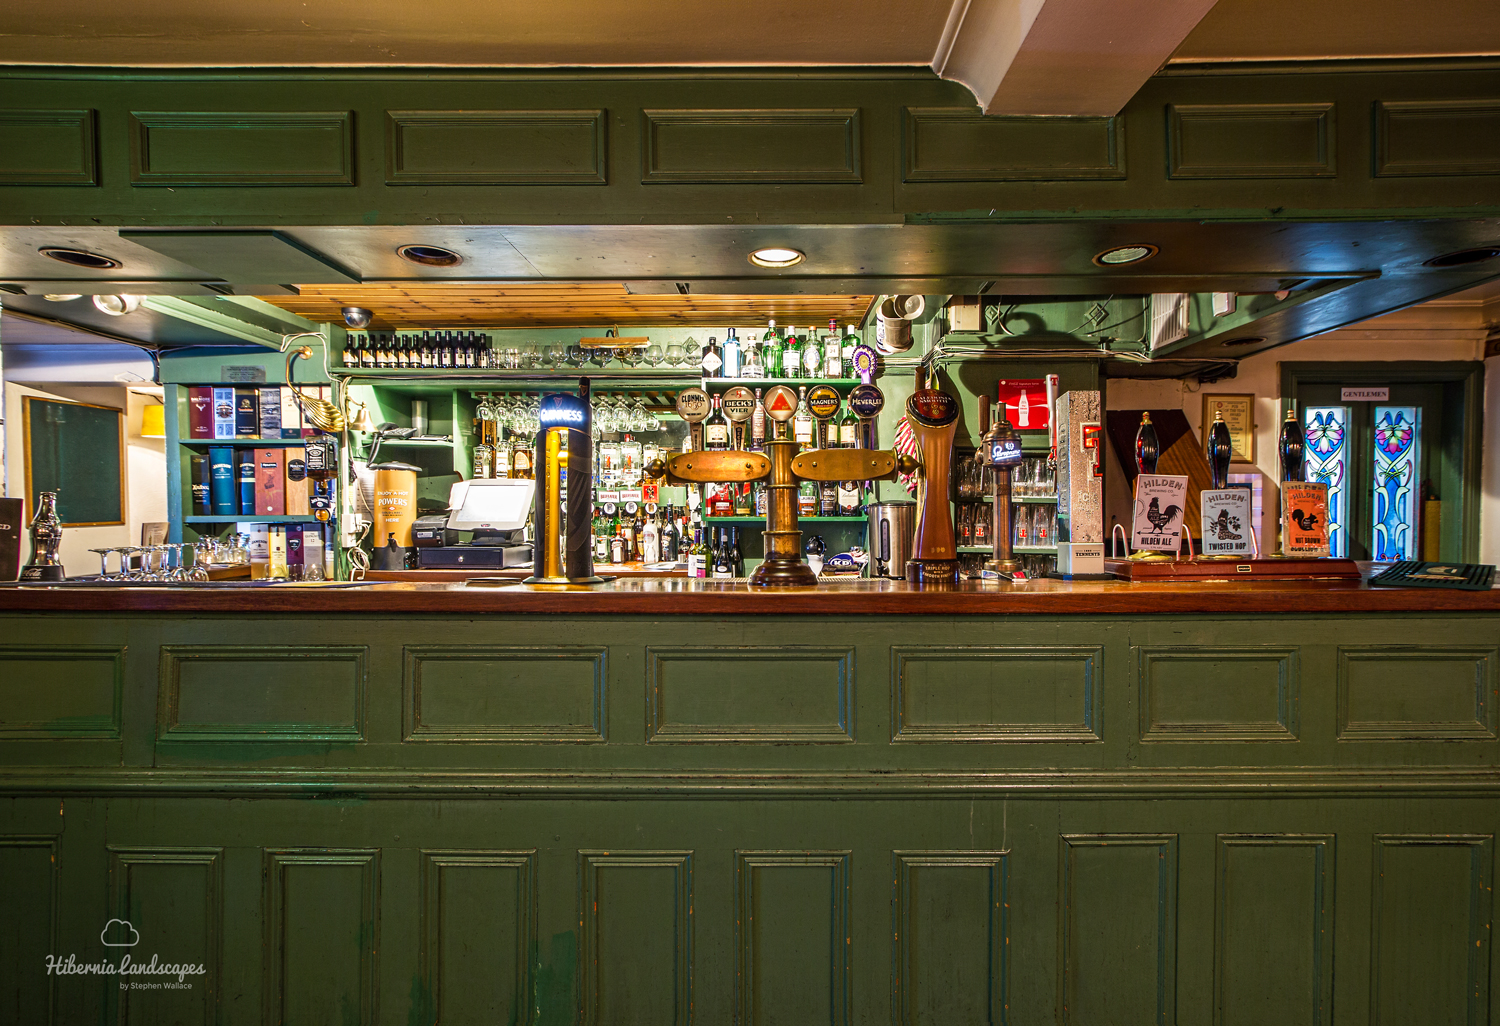 The bar itself.